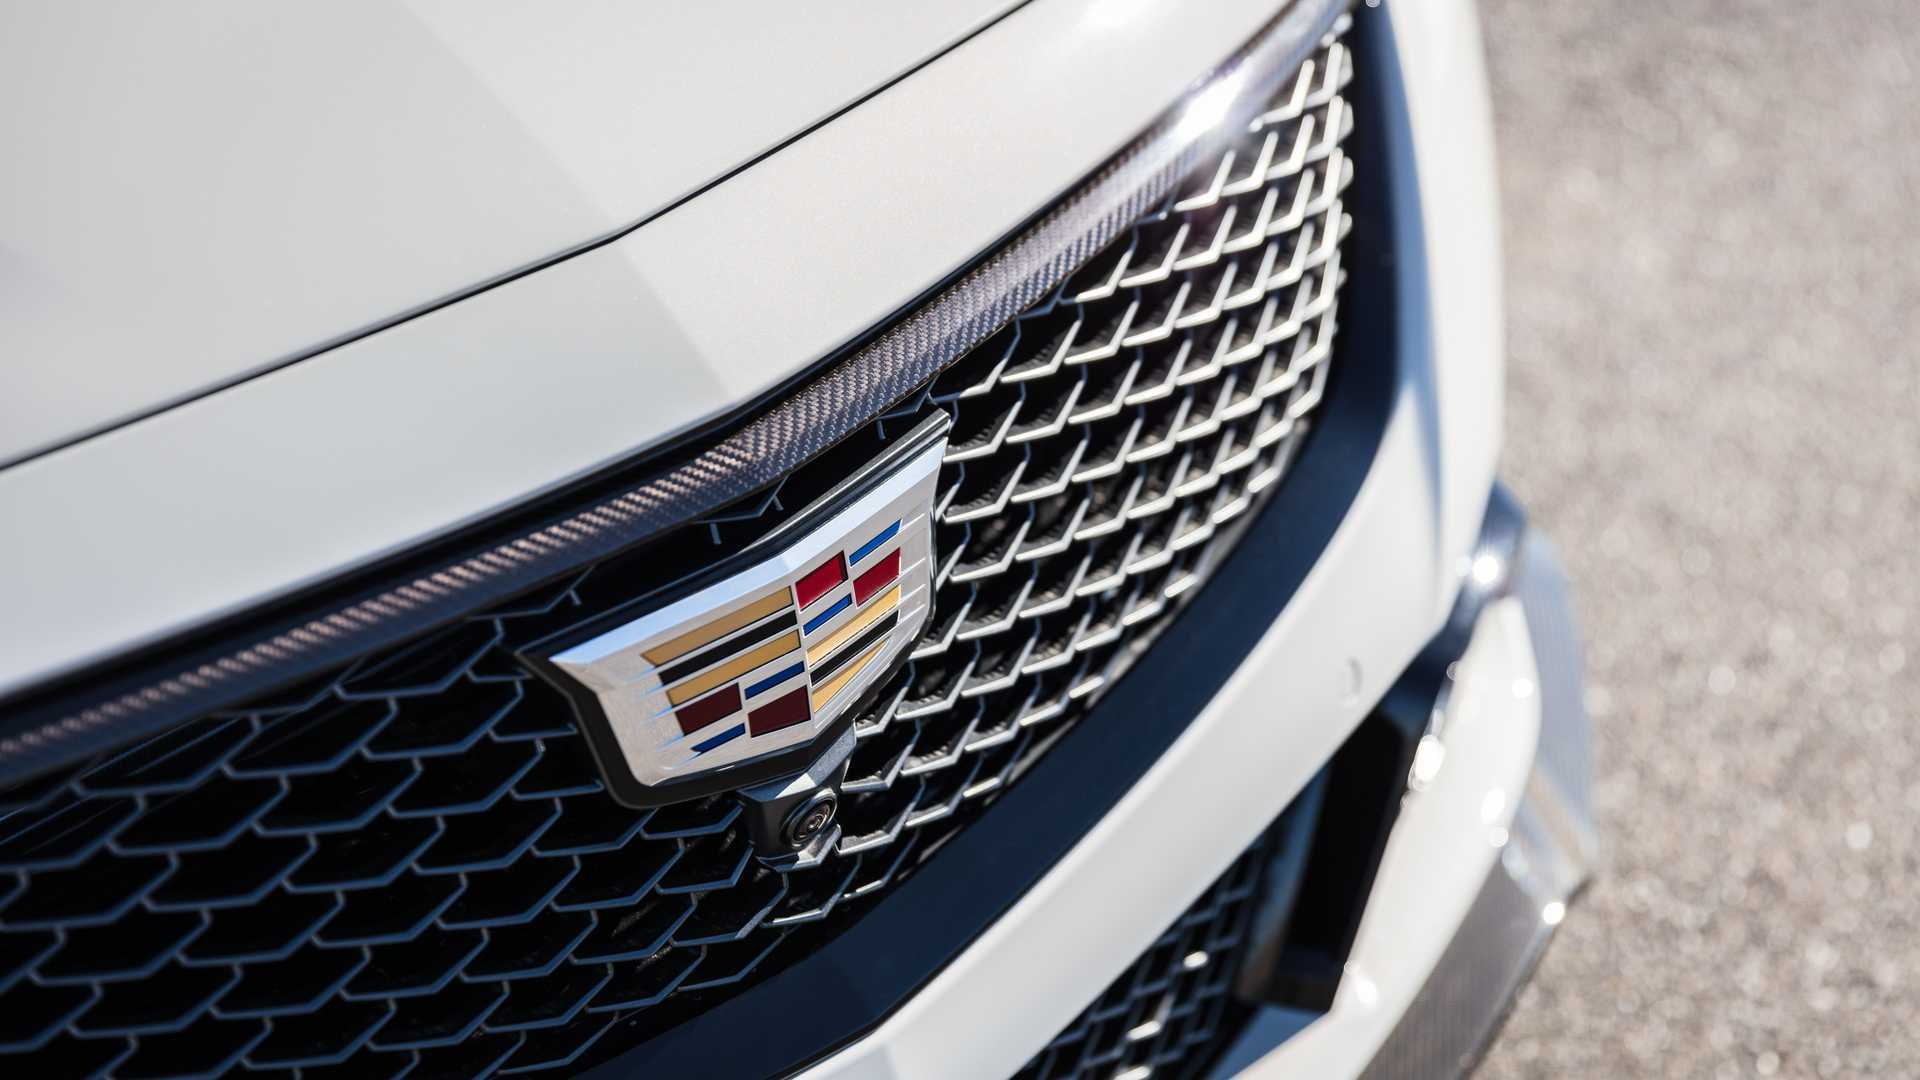 Cadillac планирует выпускать новые модели семейства Blackwing